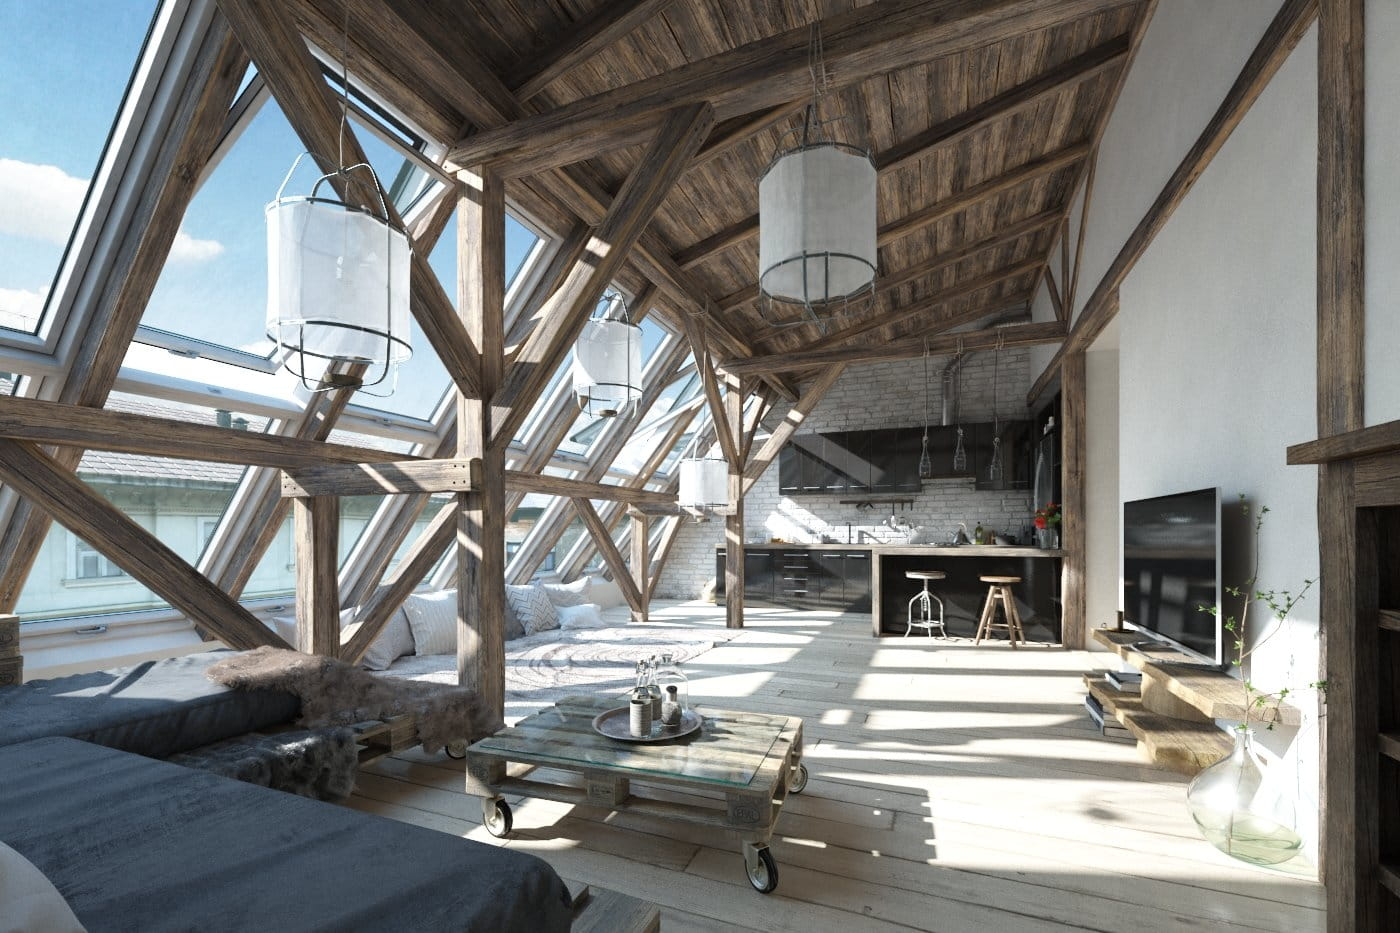 Archinteriors vol. 48 for C4D